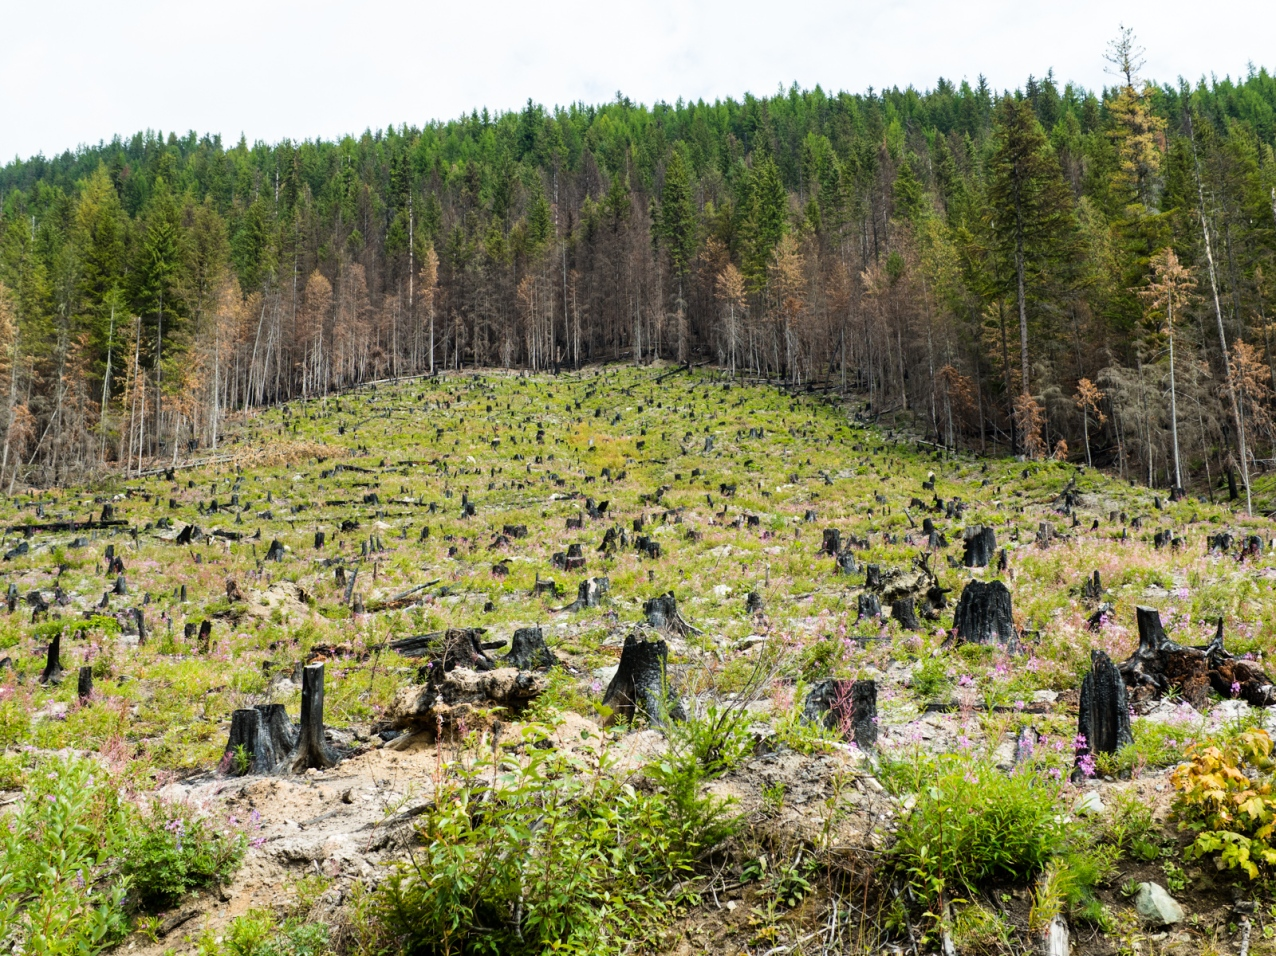 Remains of logging and fires.